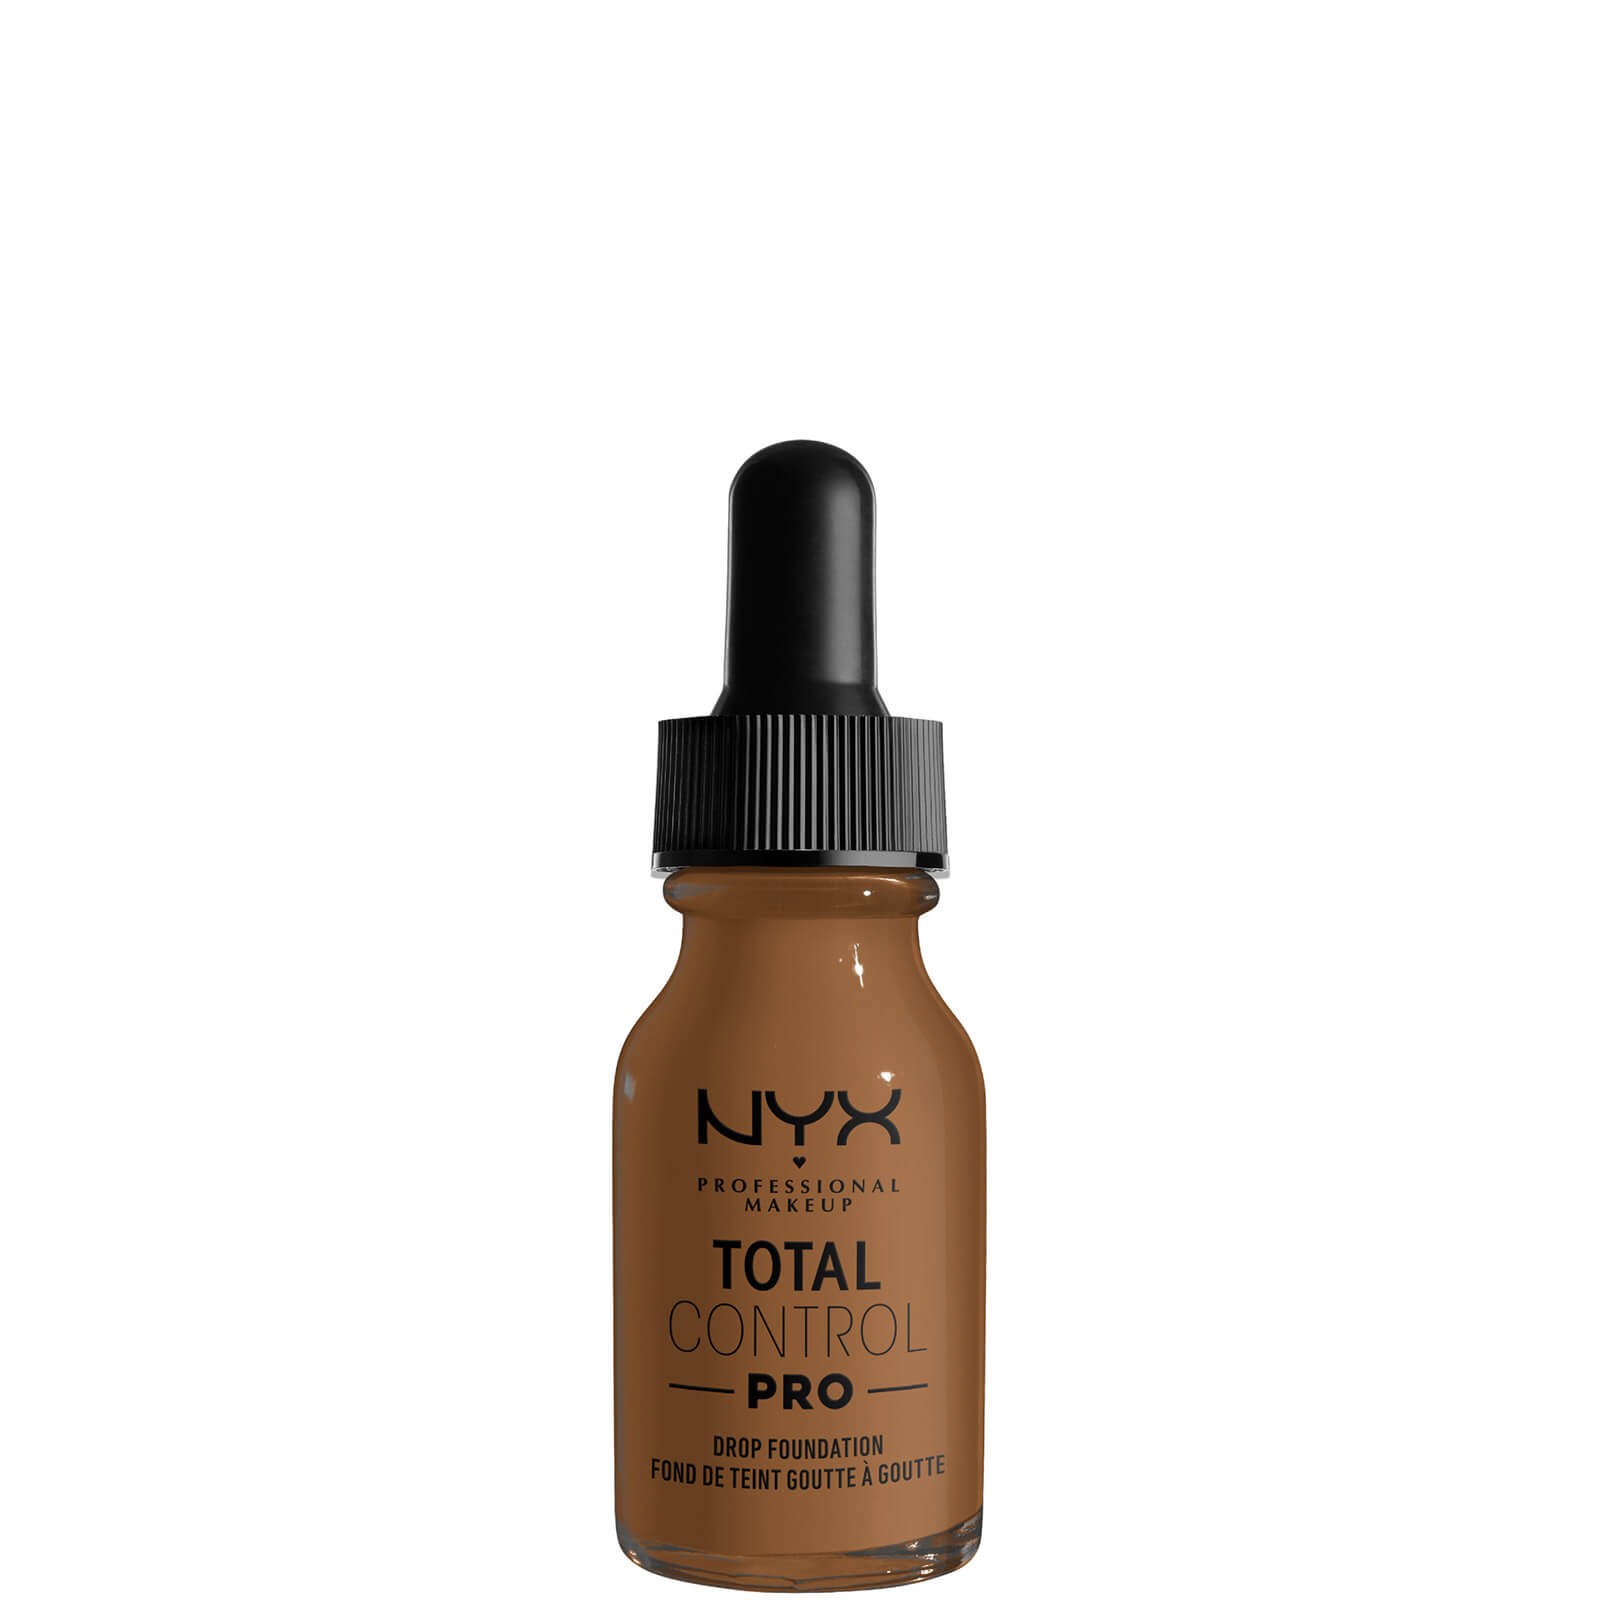 nyx professional makeup total control pro drop controllable coverage foundation 60ml (various shades) - sienna